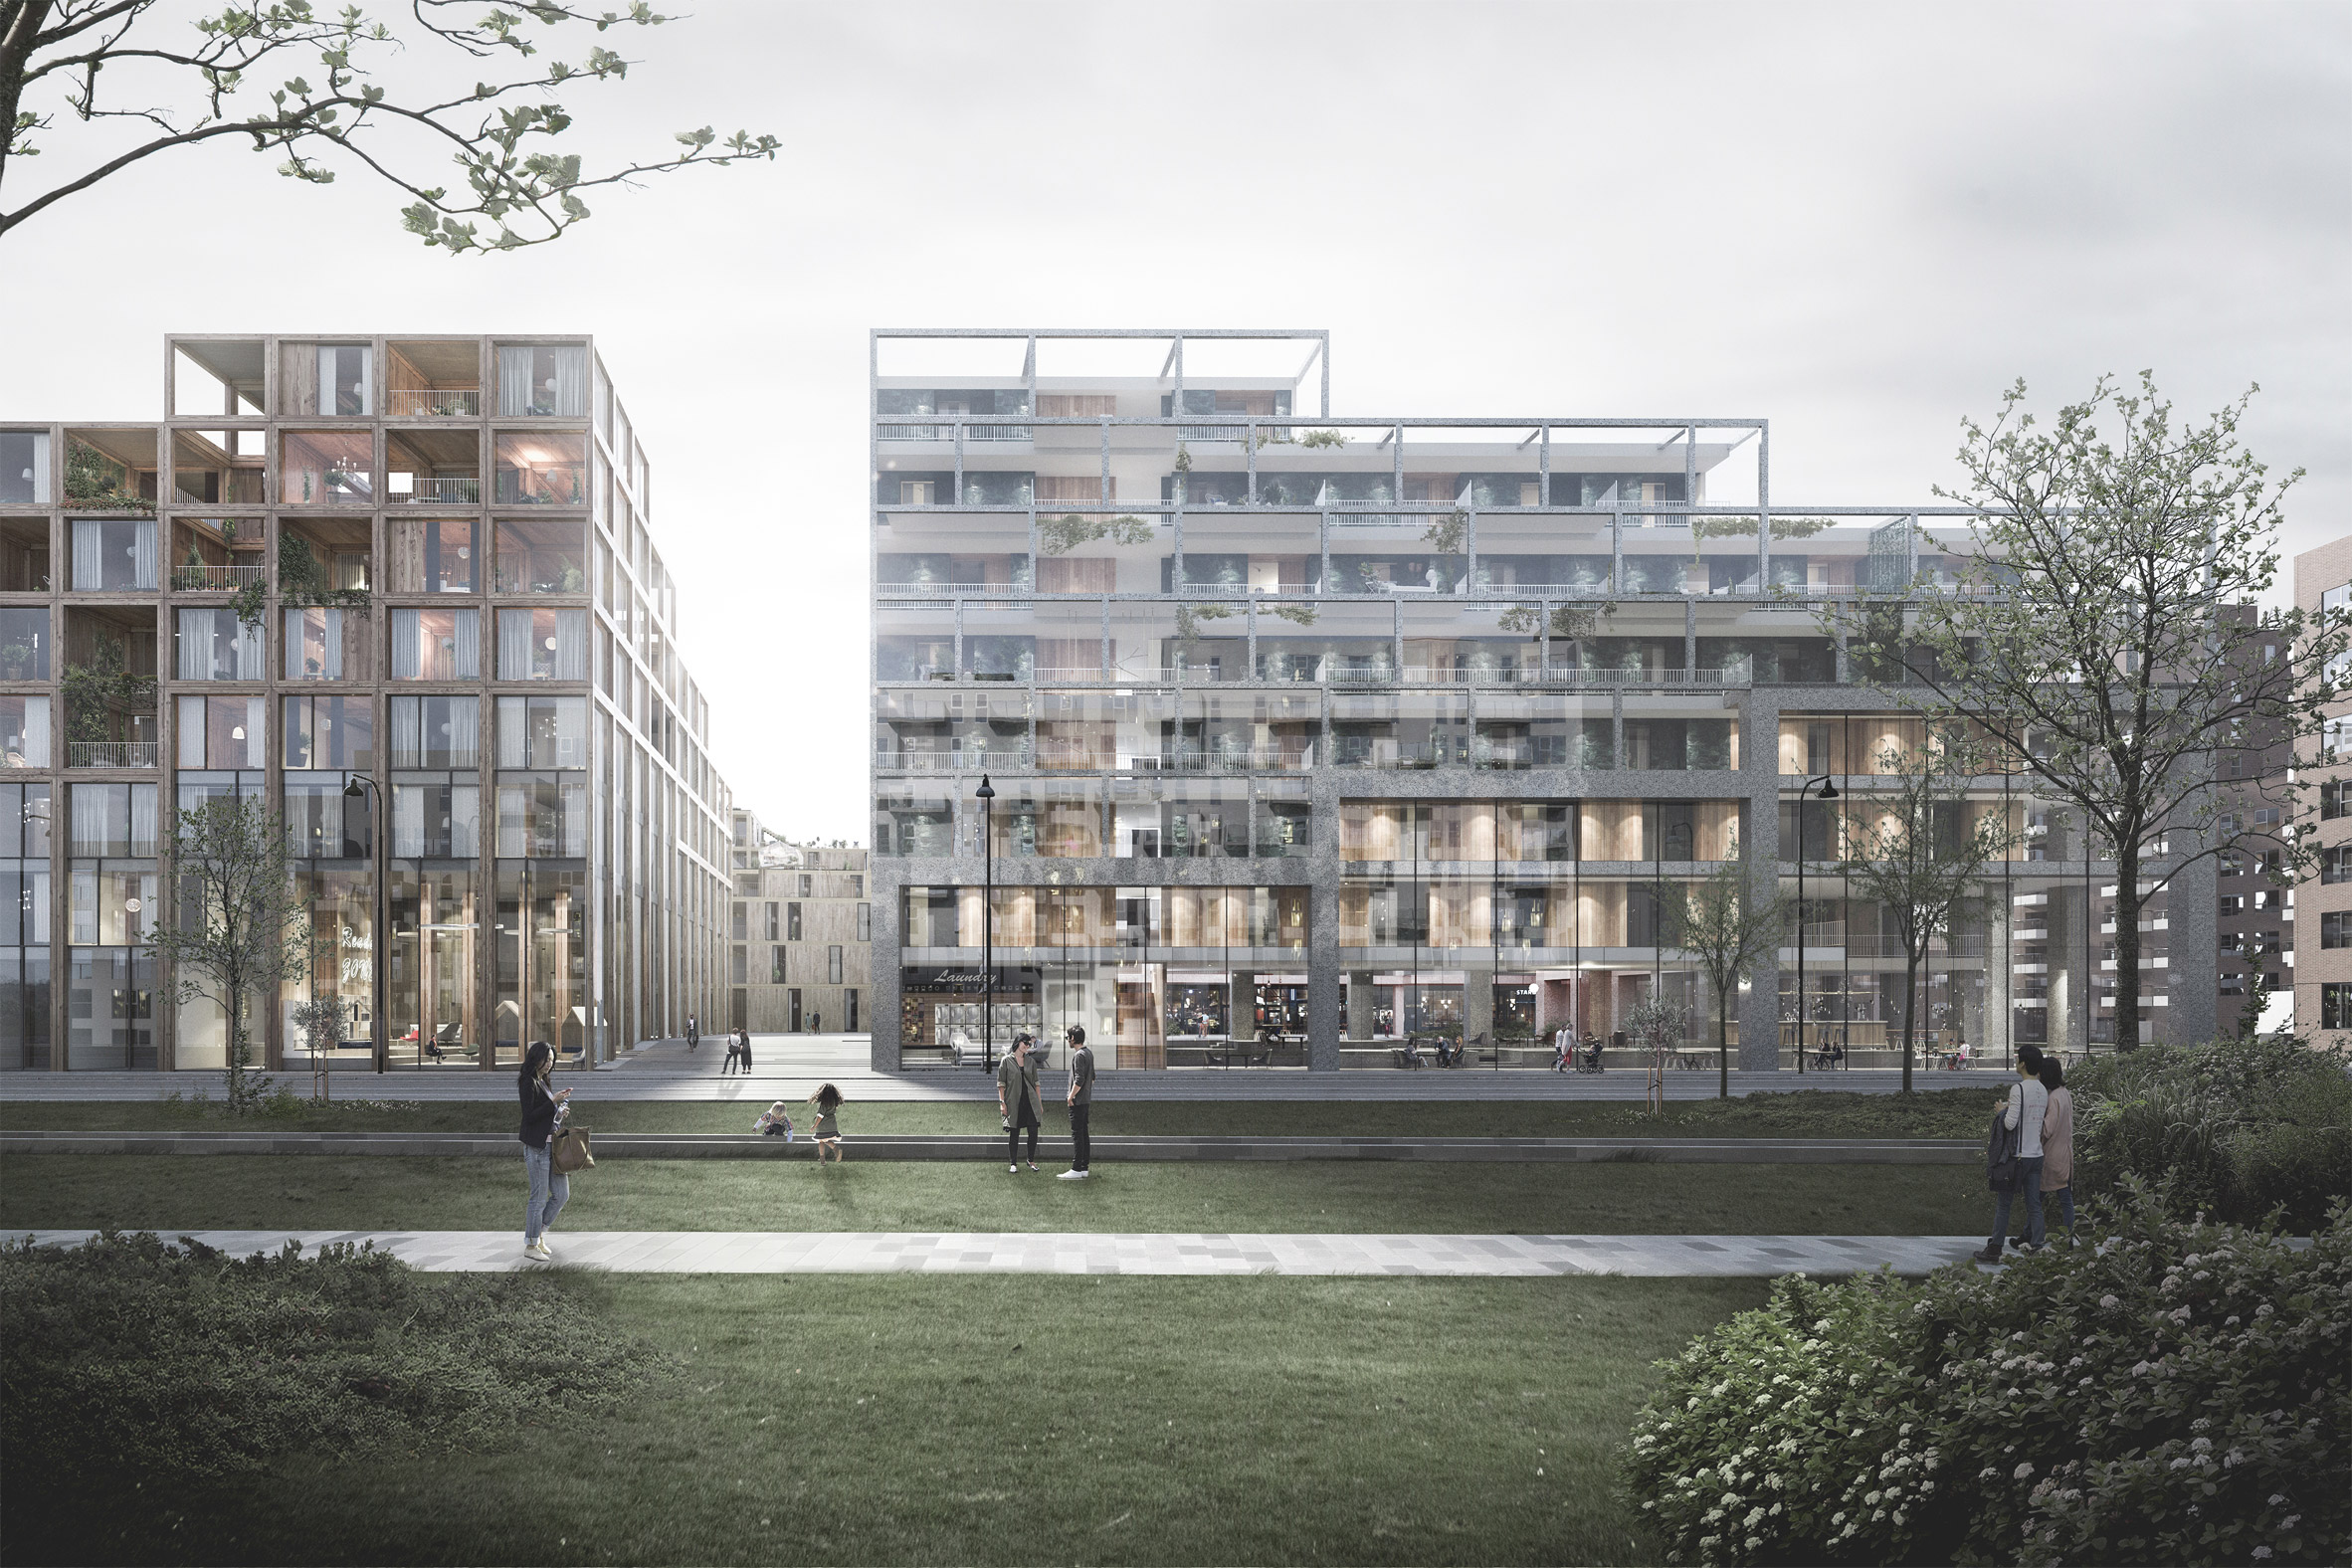 un17-village-lendager-group-copenhagen-denmark-architecture-residential-housing-sustainable_dezeen_2364_col_1.jpg